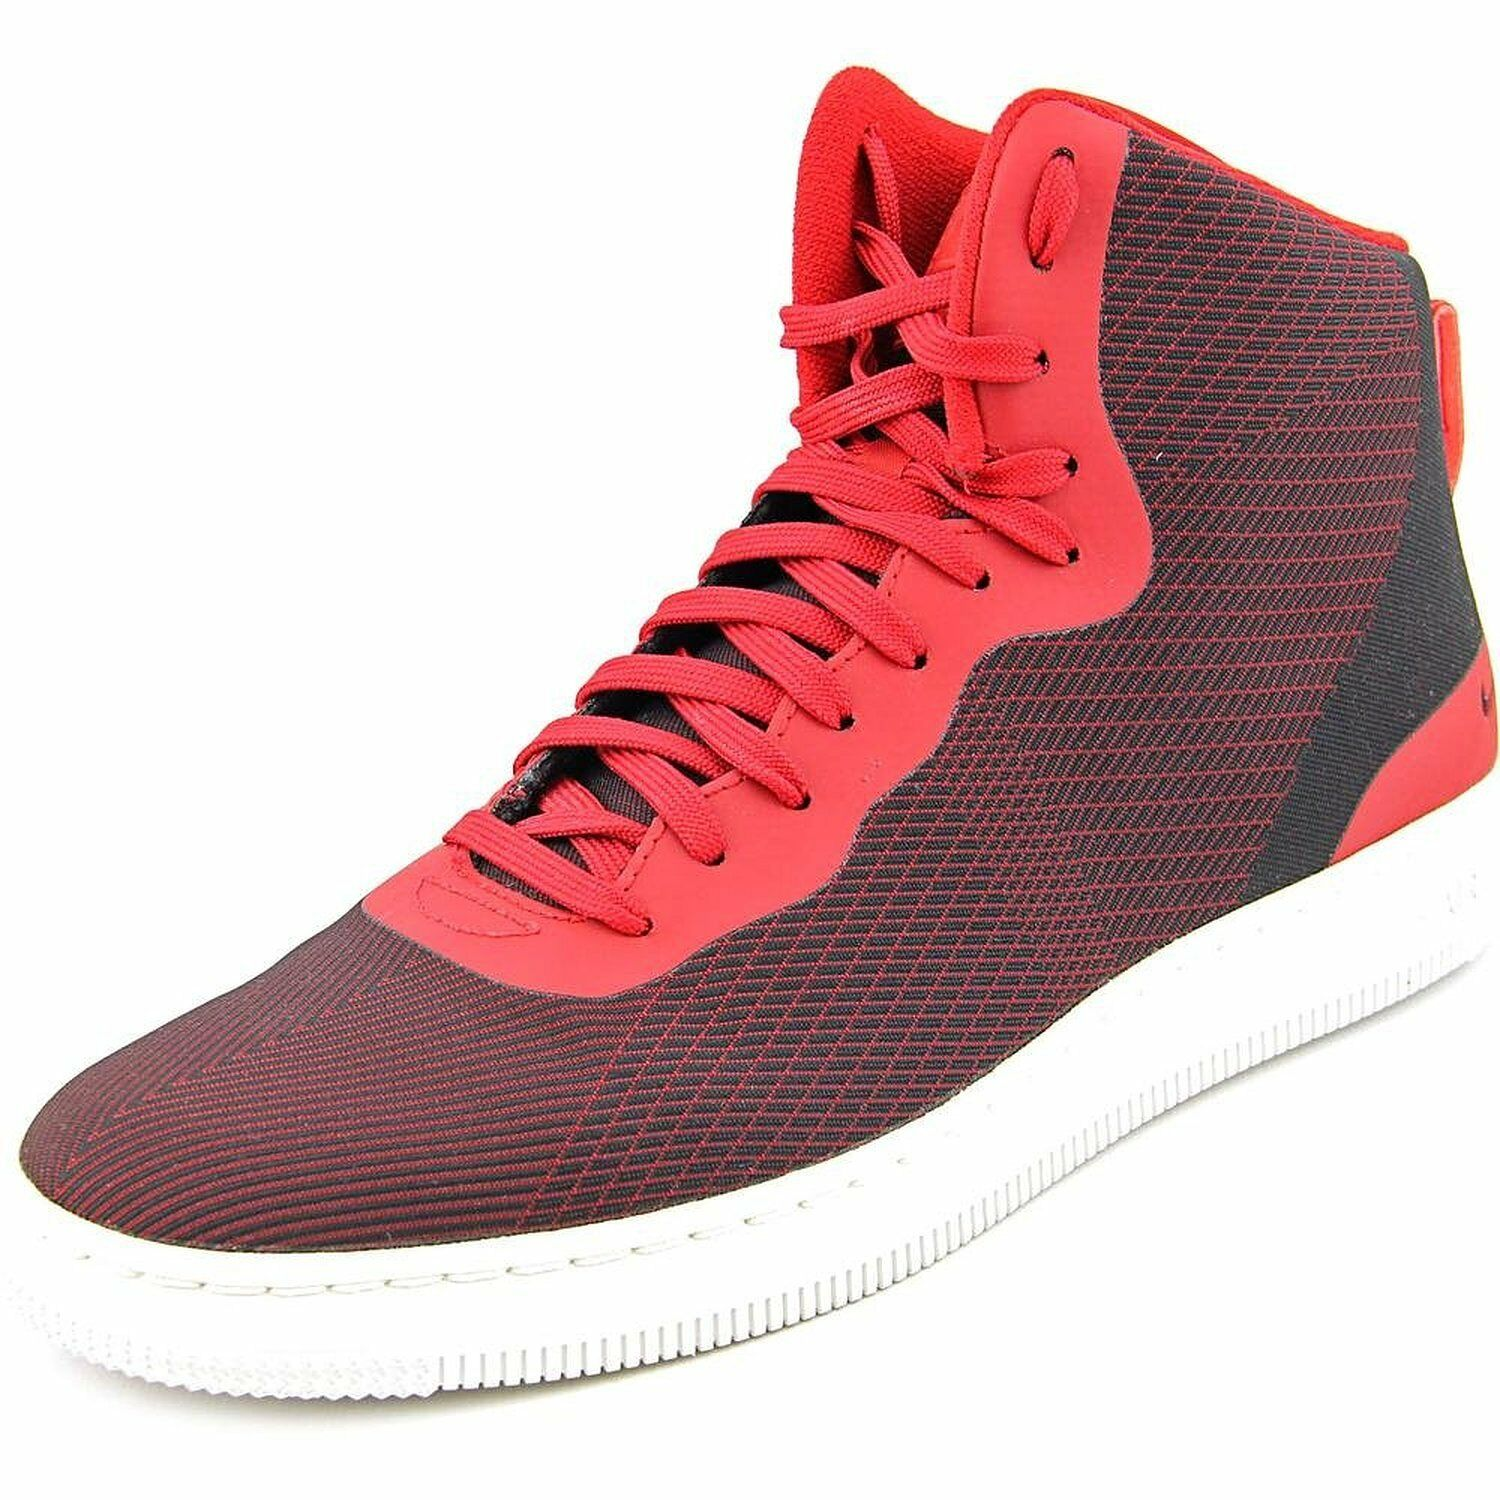 Wild casual shoes Nike NSW Pro Stepper Red High Top Sneakers